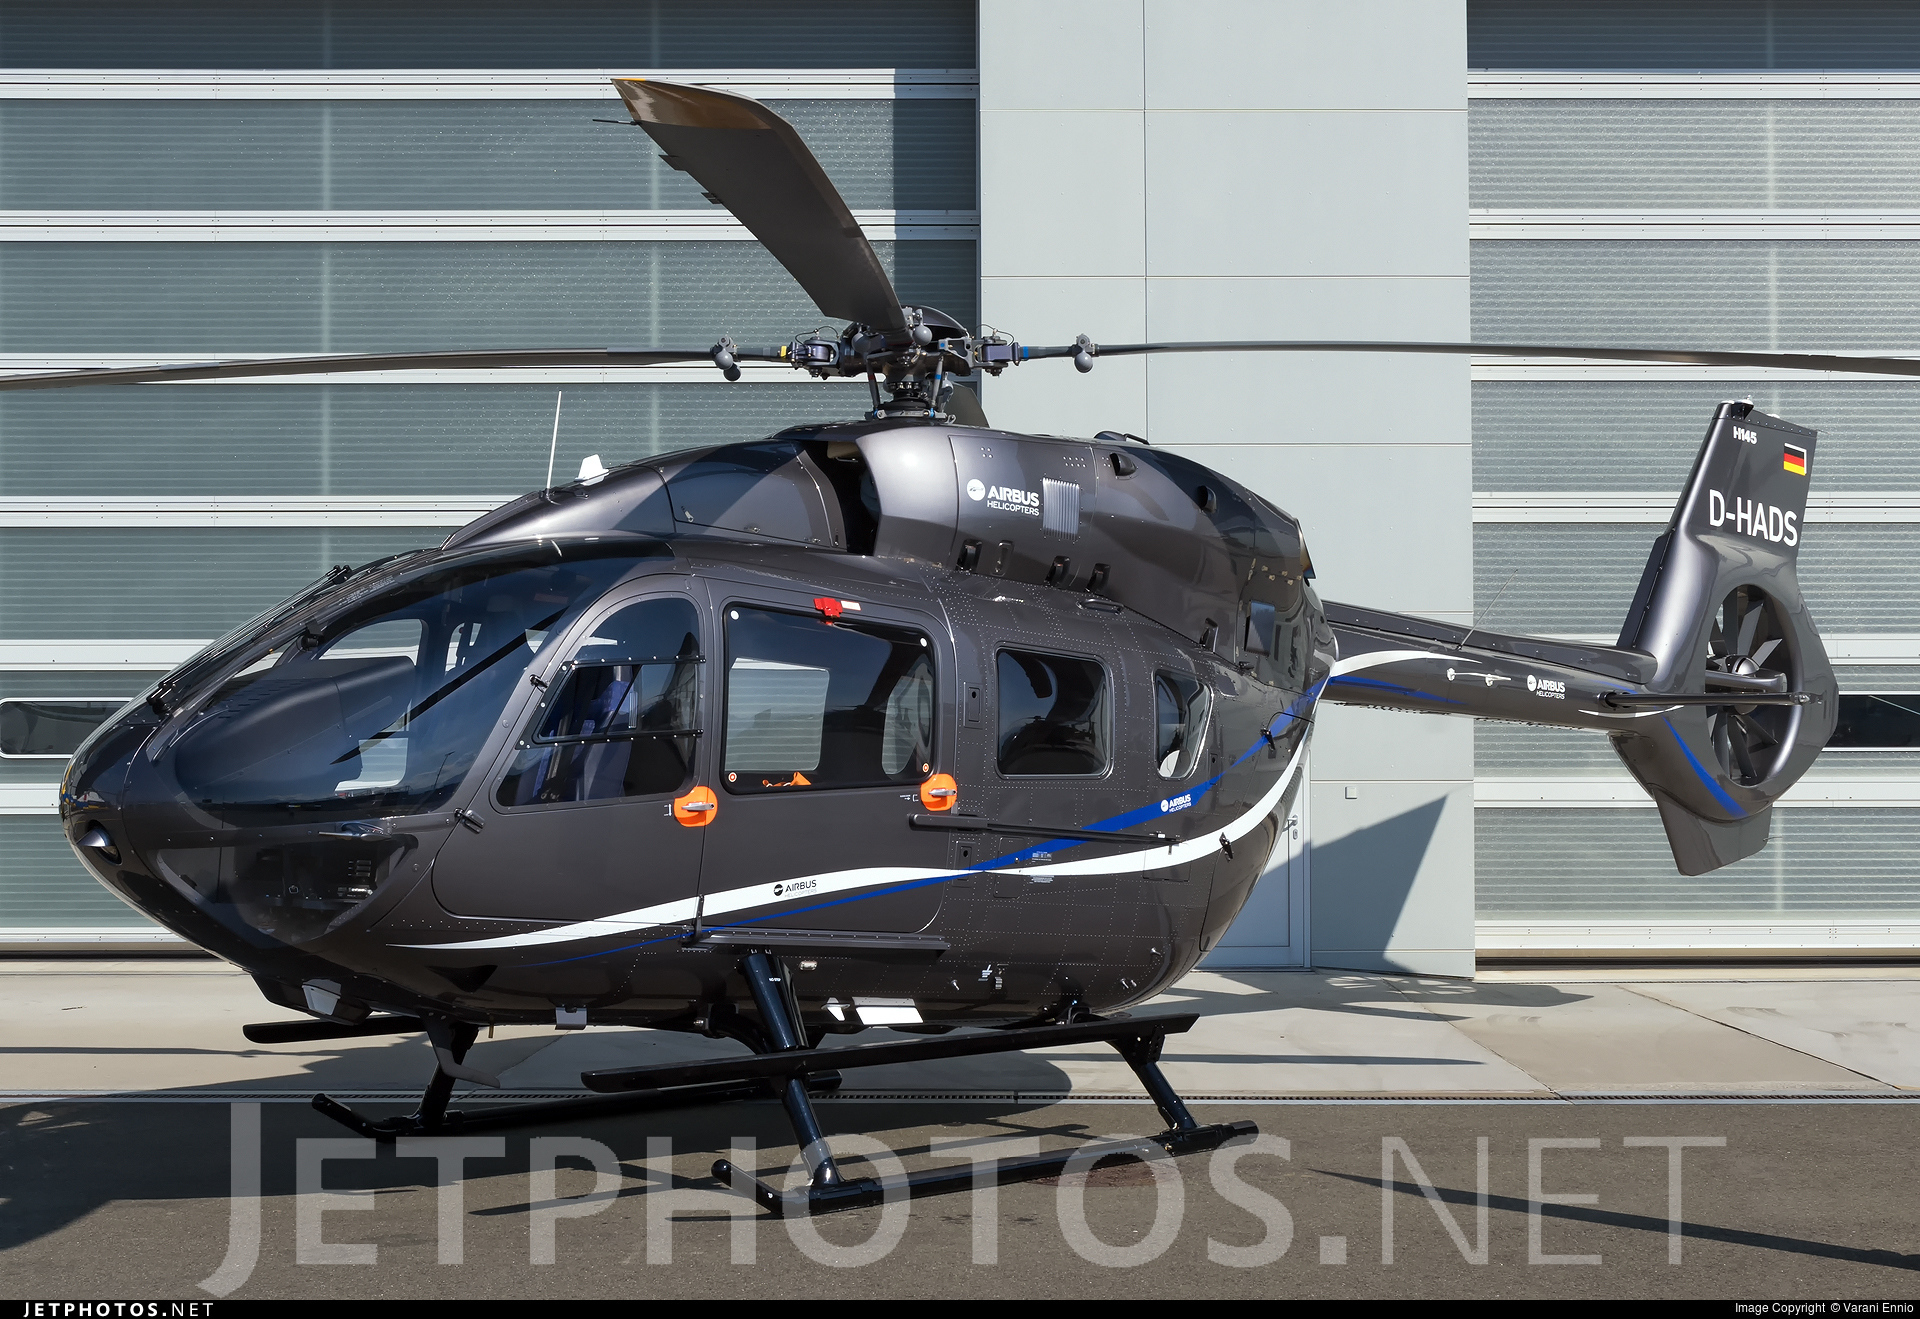 D-HADS - Airbus Helicopters H145 - Private